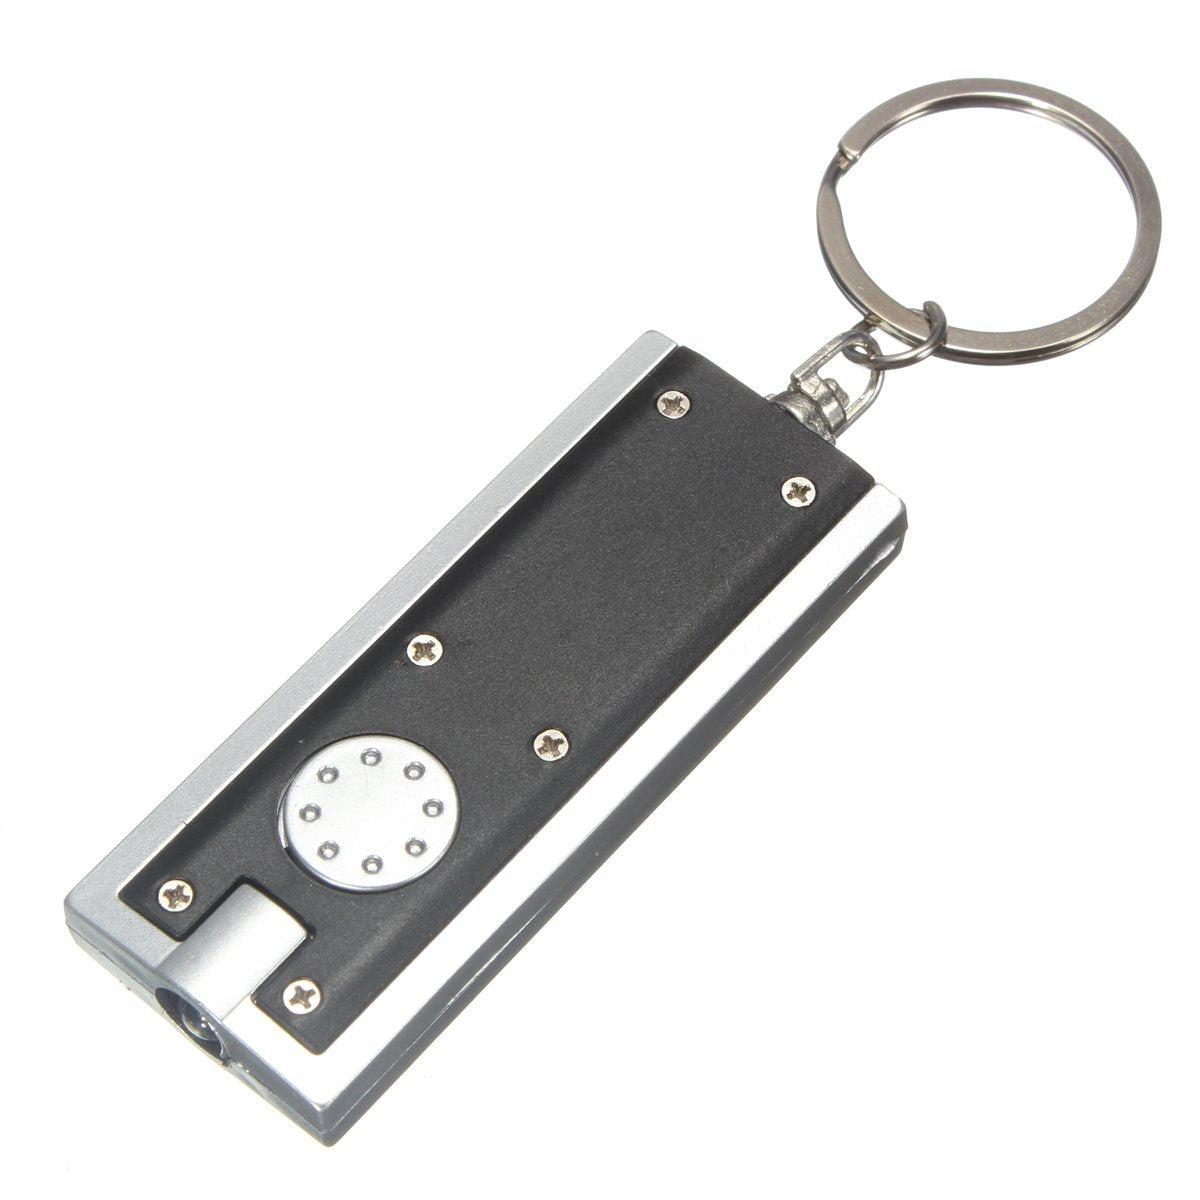 Keychain Mini LED Flashlight with Keyring, Portable Thin & Lightweight - 45 Lumen Micro Light